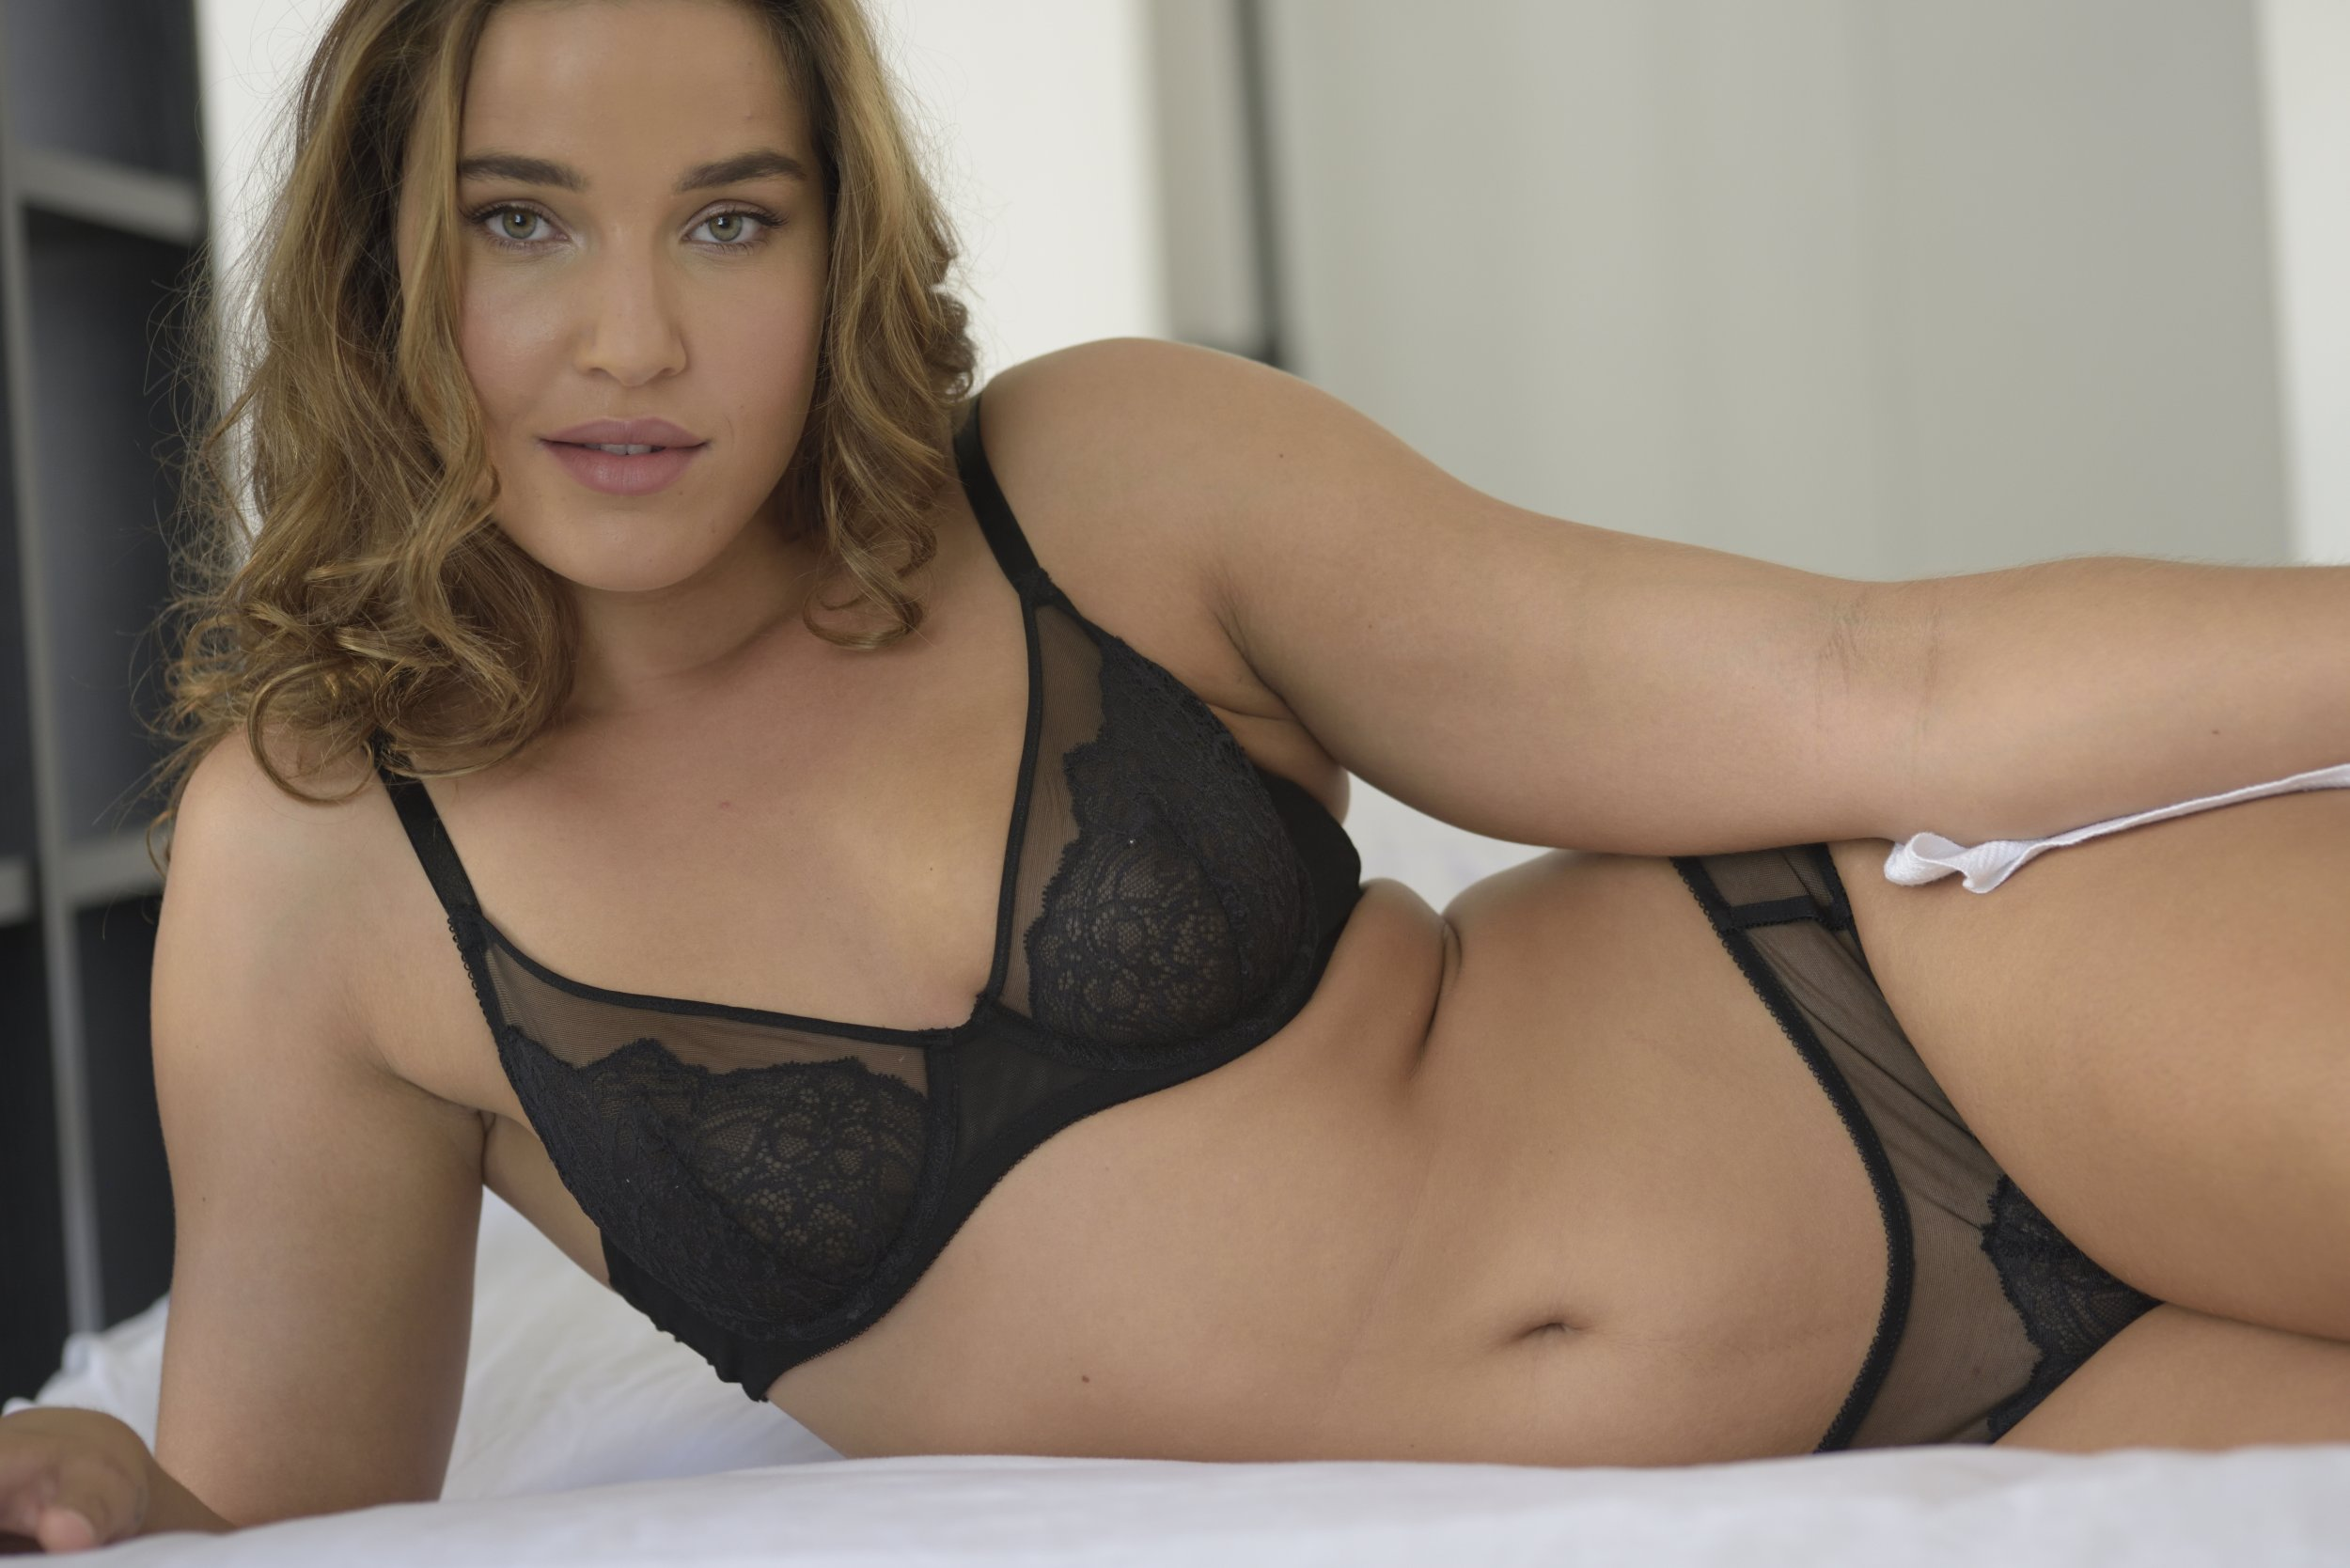 1990aaa5f42 Sexy Bras for Everyone! Model Launches Lingerie Line for the Women ...